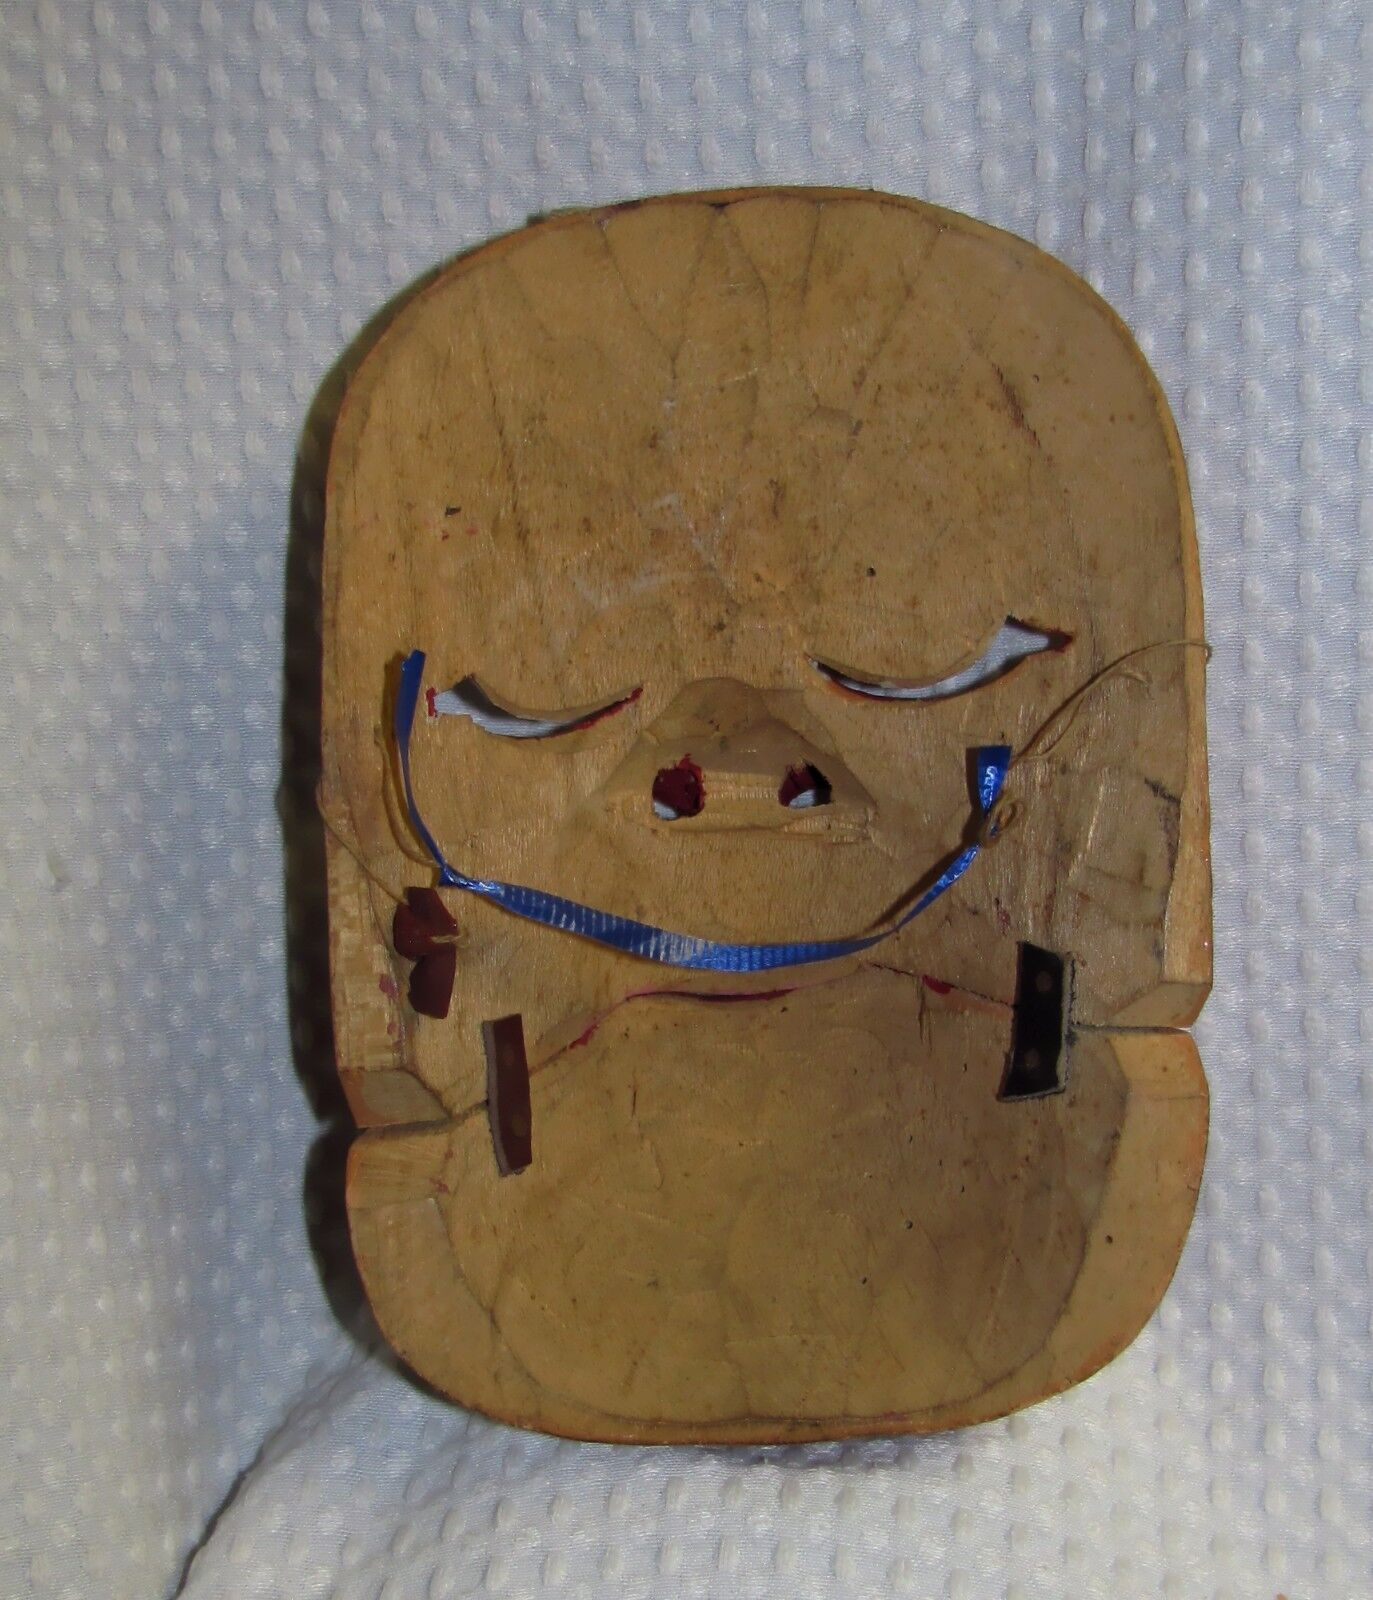 Vintage Balinese Ceremonial Mask with Movable Jaw